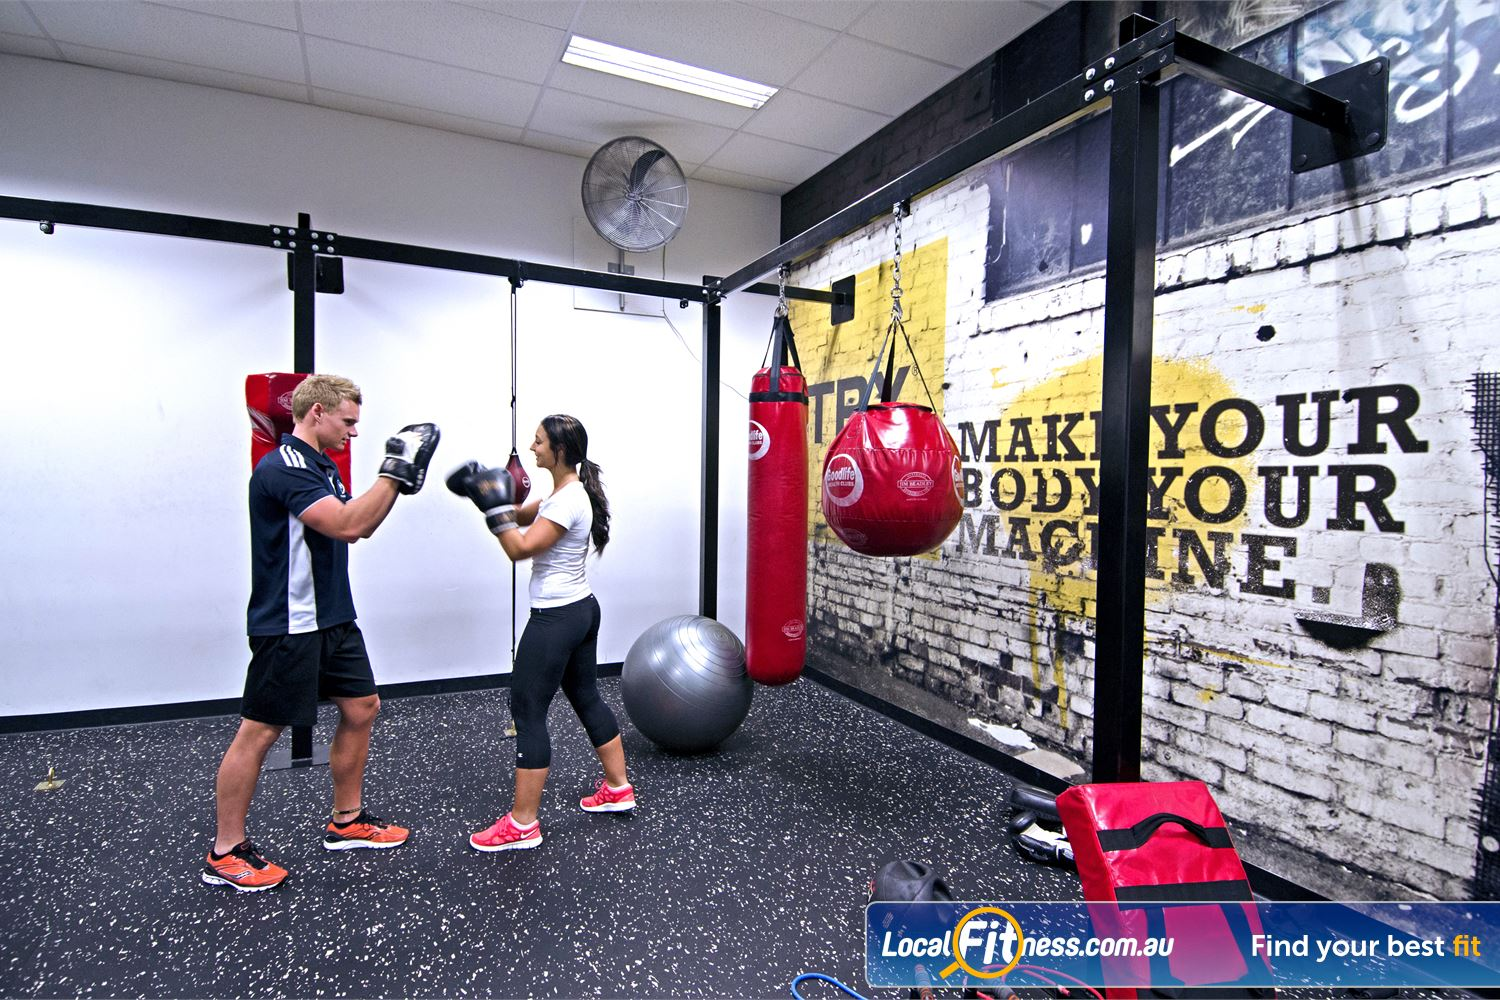 Goodlife Health Clubs Near Tennyson Vary your Graceville personal training with some cardio boxing.